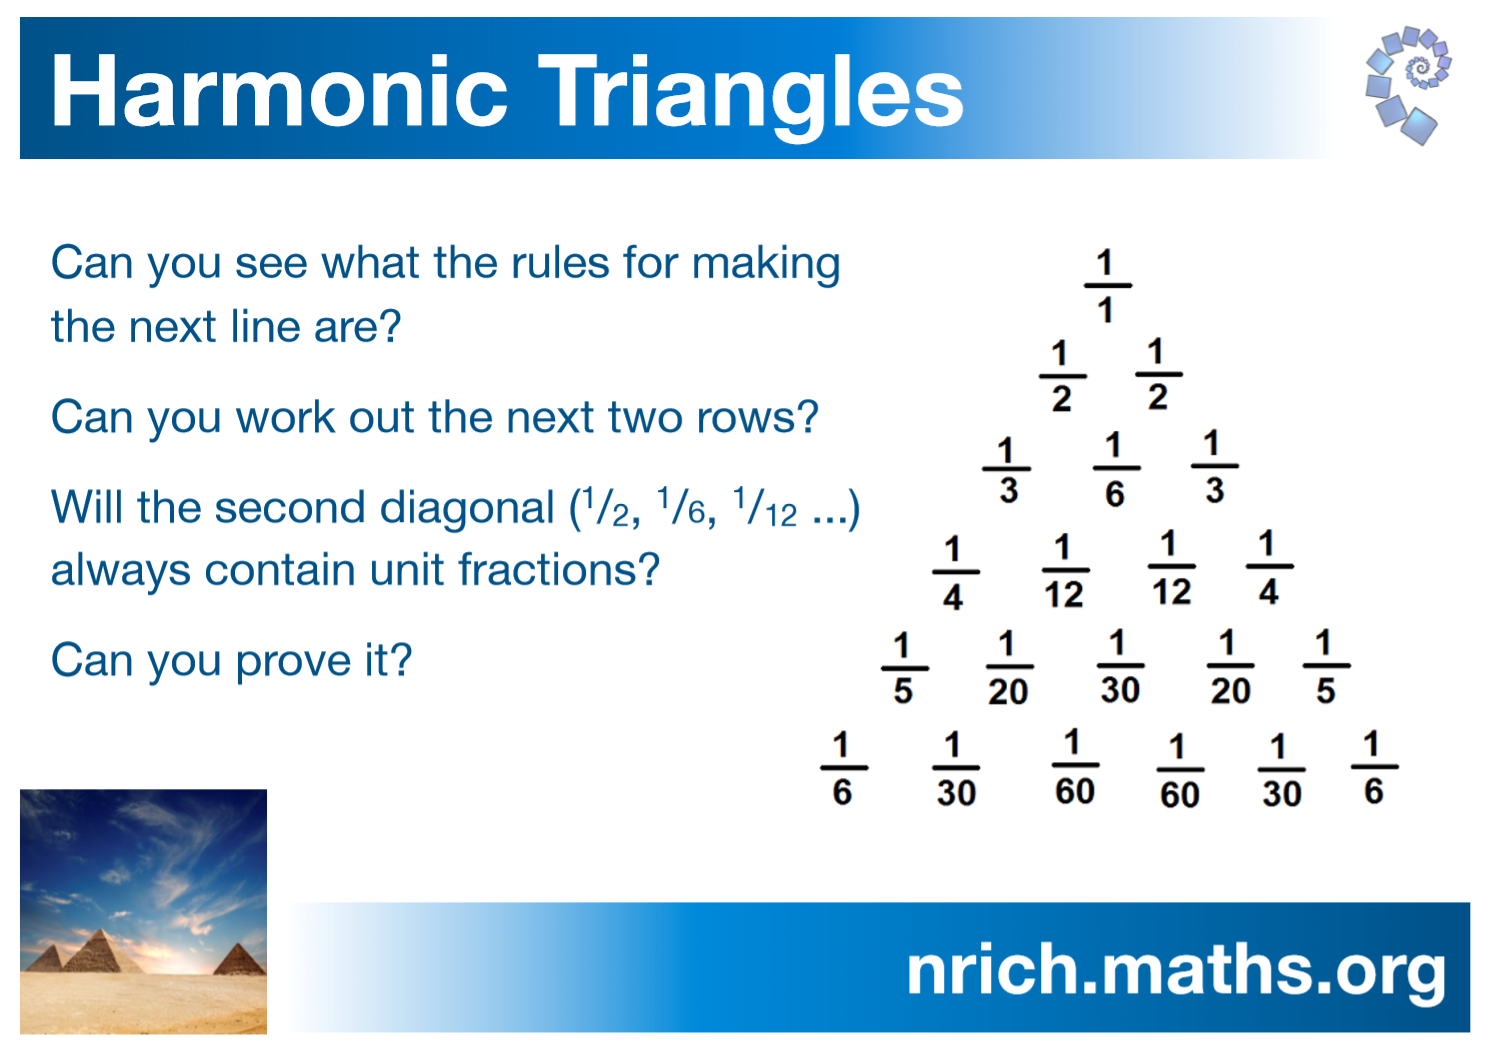 Harmonic Triangles Poster : nrich.maths.org